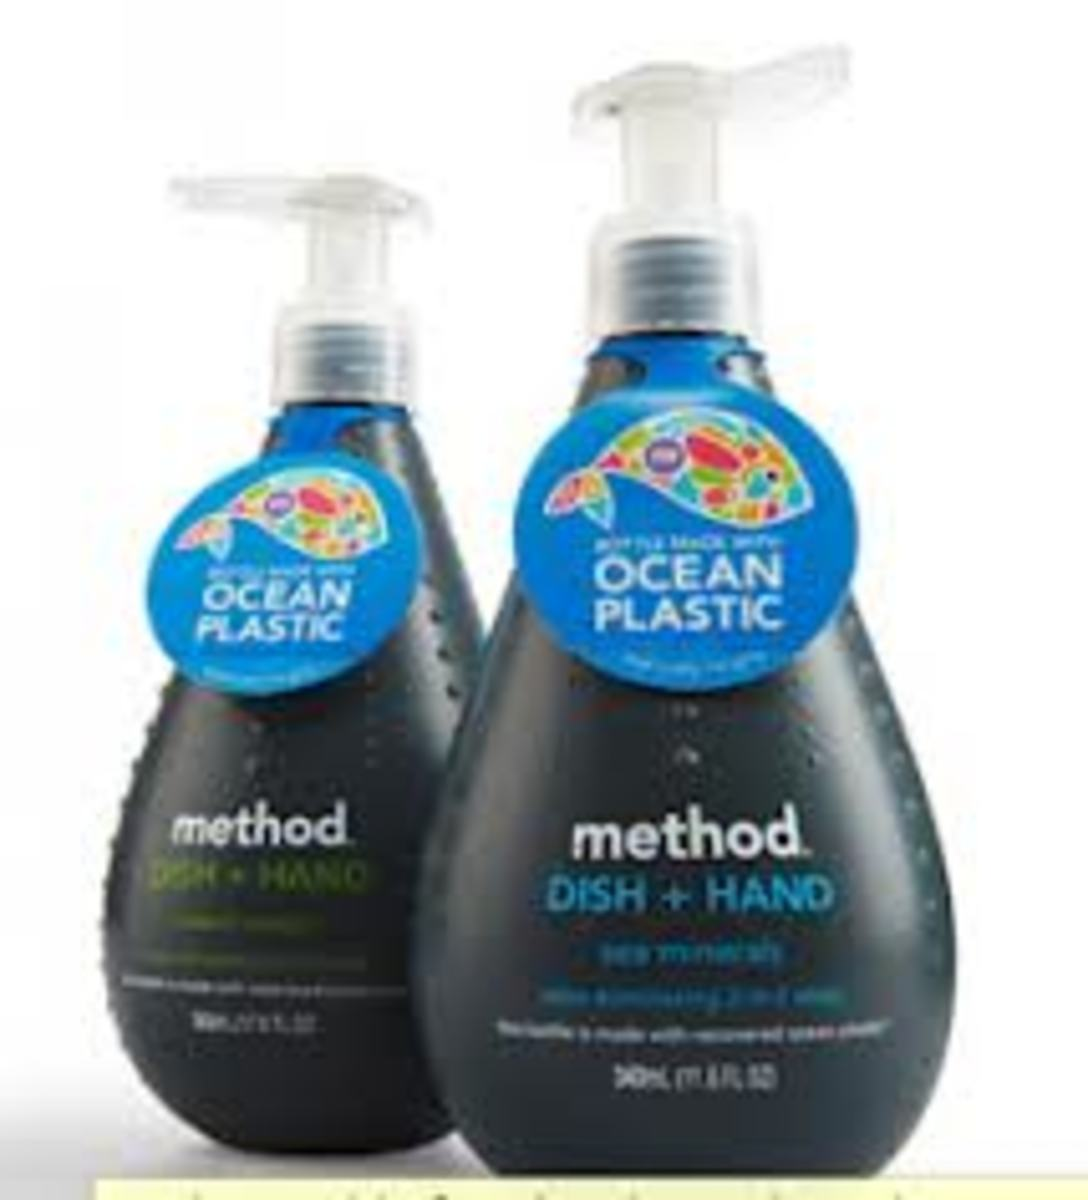 Method Soaps come in all shapes, sizes, and even recyclable material, see here the bottles are made of ocean plastic.  Always trying to better the world, one cleaner at a time.